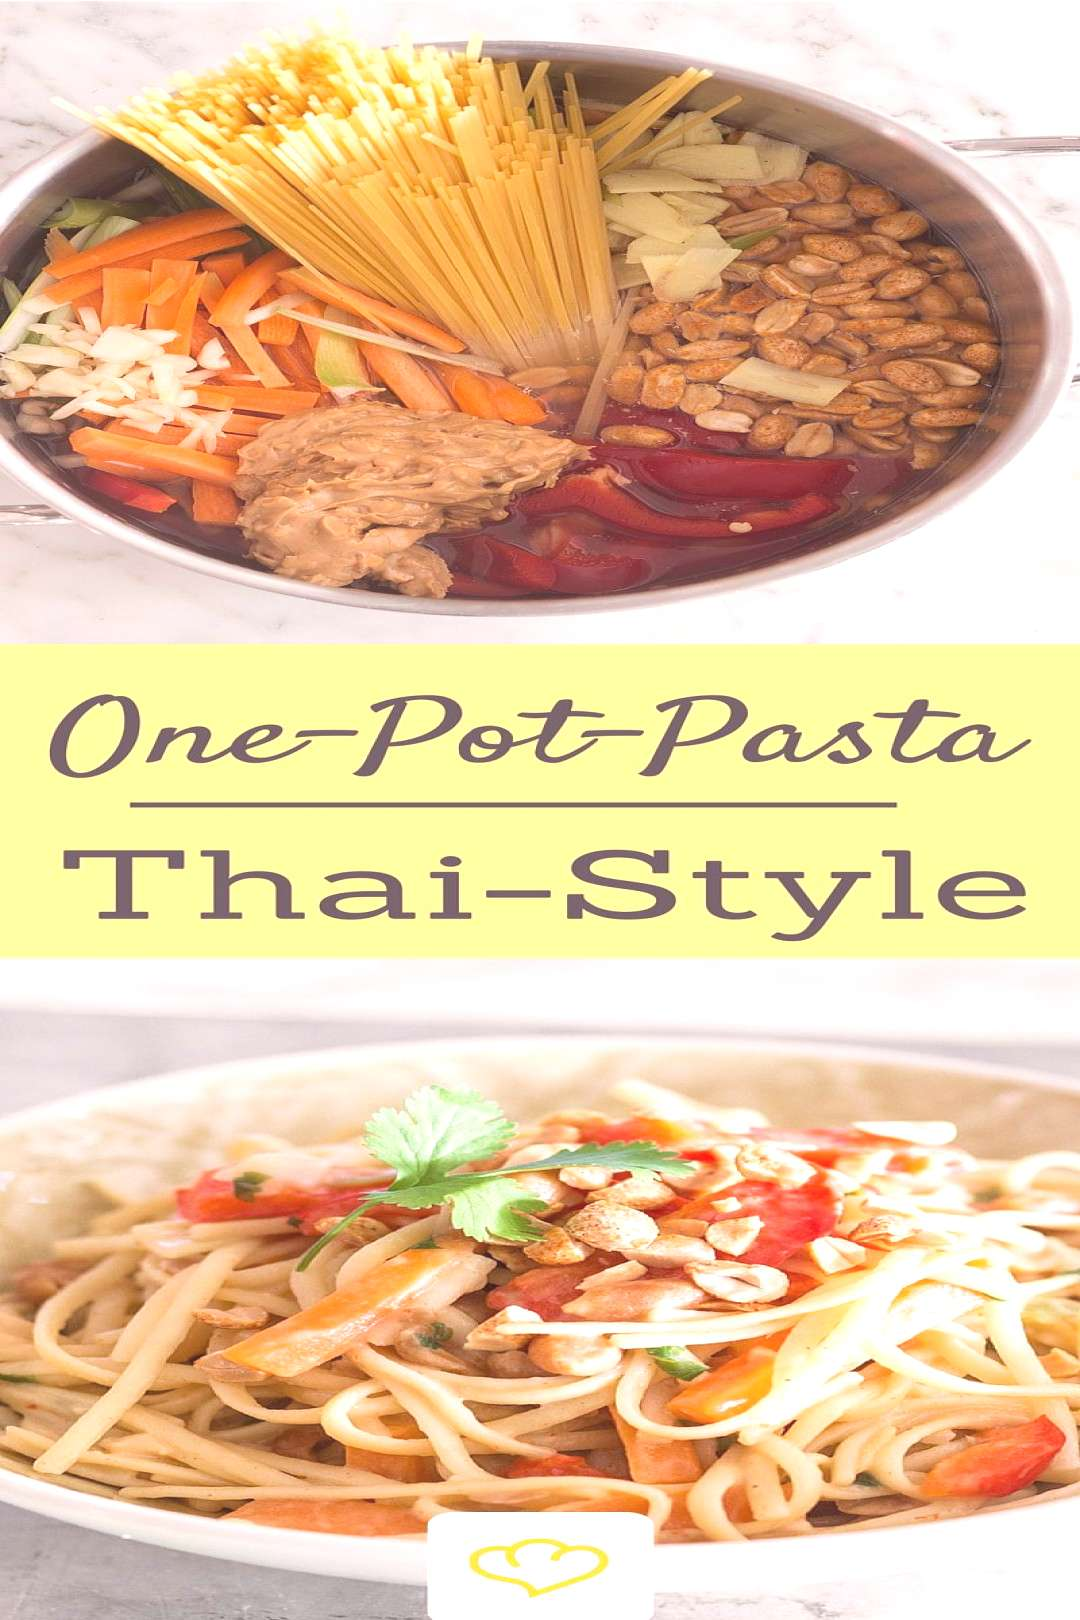 One pot pasta Thai style with vegetables and peanuts#pasta